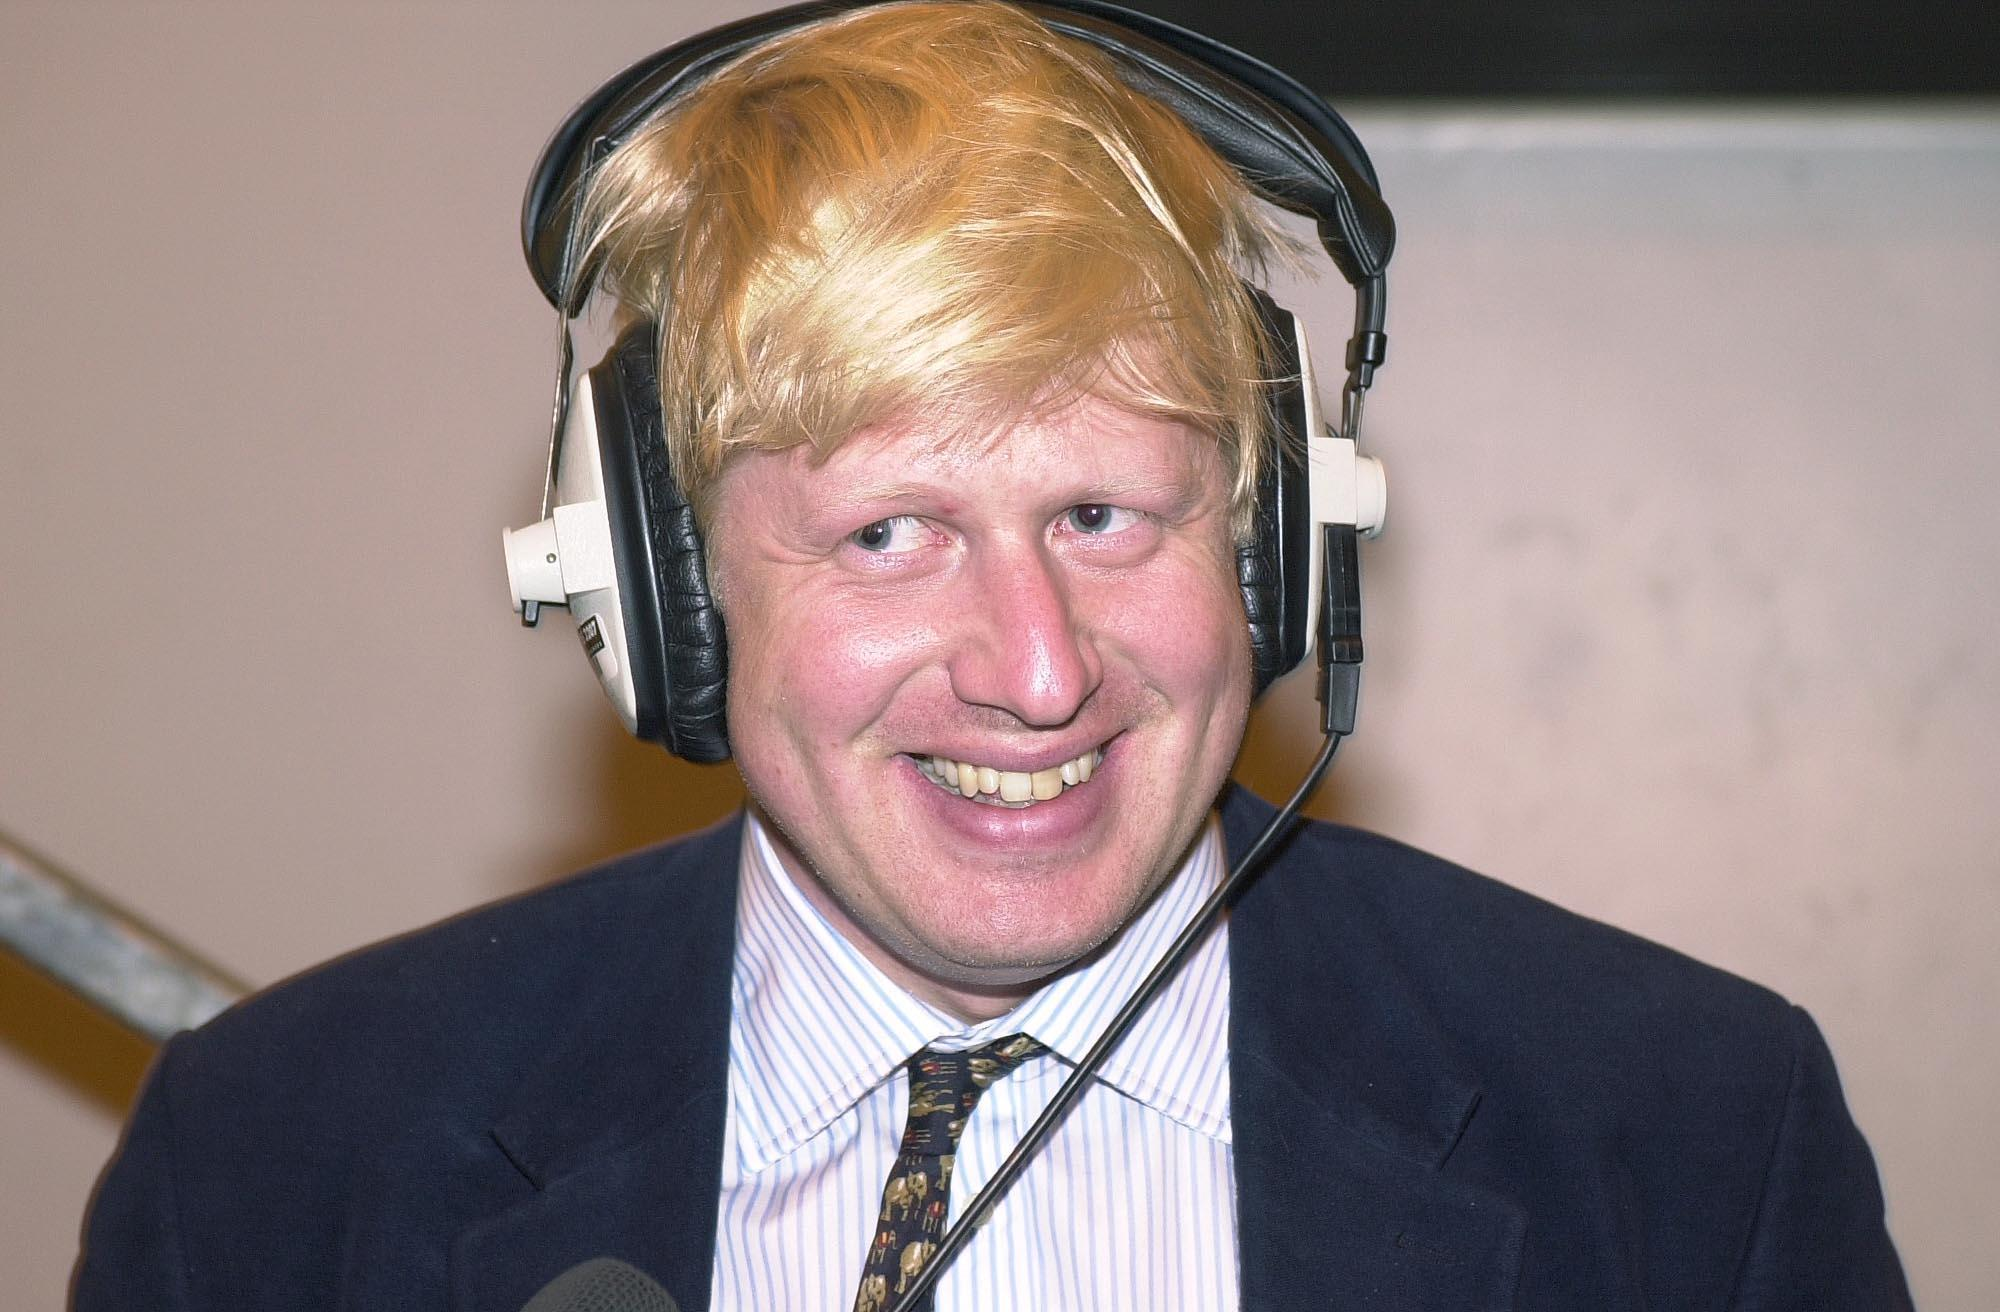 Journalist Boris Johnson during a radio broadcast, at the count in Watlington, Oxfordshire, after winning the Henley seat for the Conservatives in the 2001 General Election. The seat was Michael Heseltine's, who has stepped down at this election. 13/11/2004  Boris Johnson who was Saturday November 13 2004, sacked from the Conservative frontbench amid fresh allegations about his private life, a spokesman for Tory leader Michael Howard said.